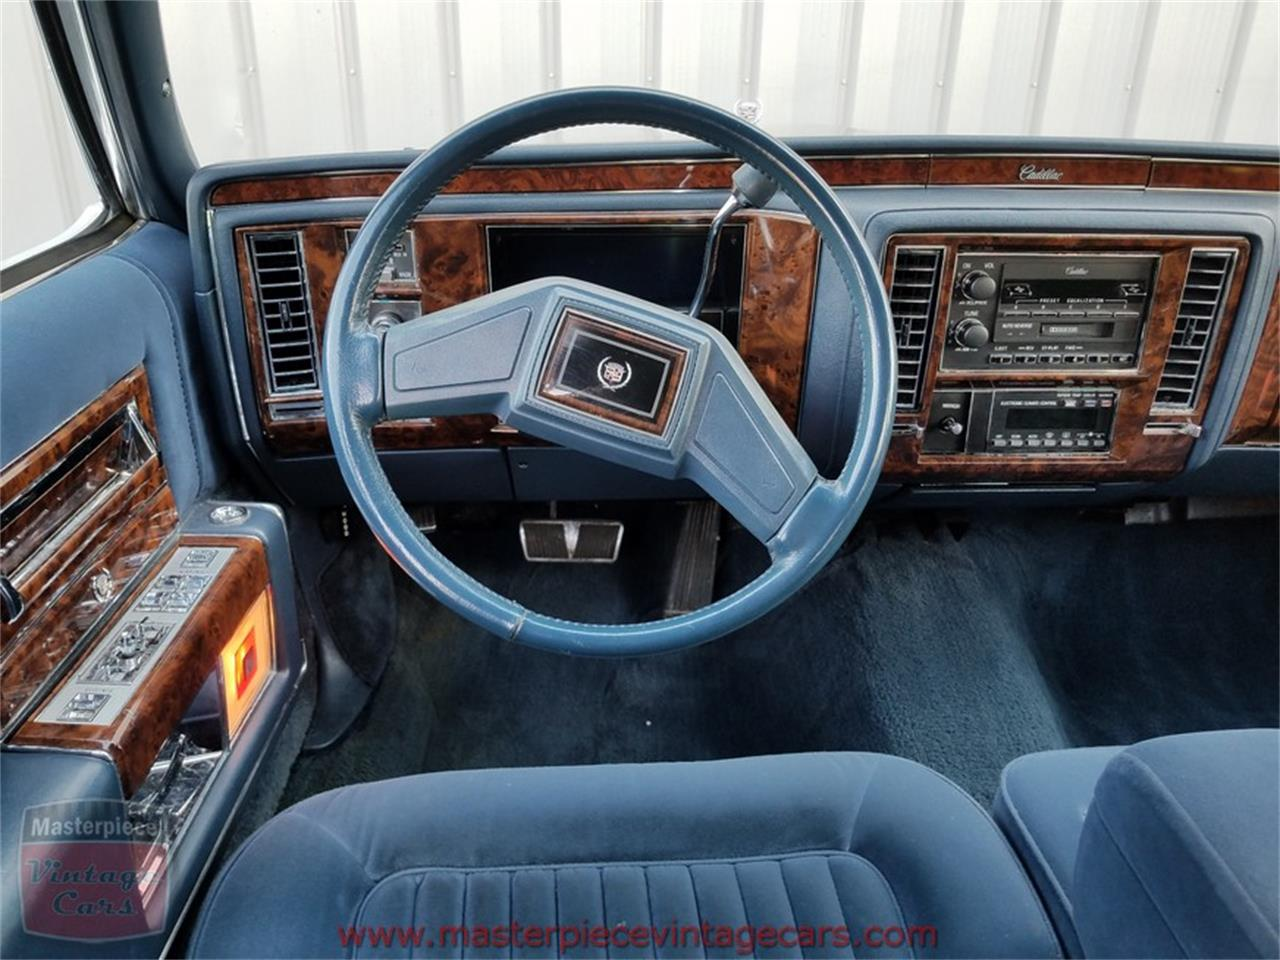 1991 Cadillac Brougham for sale in Whiteland, IN – photo 15